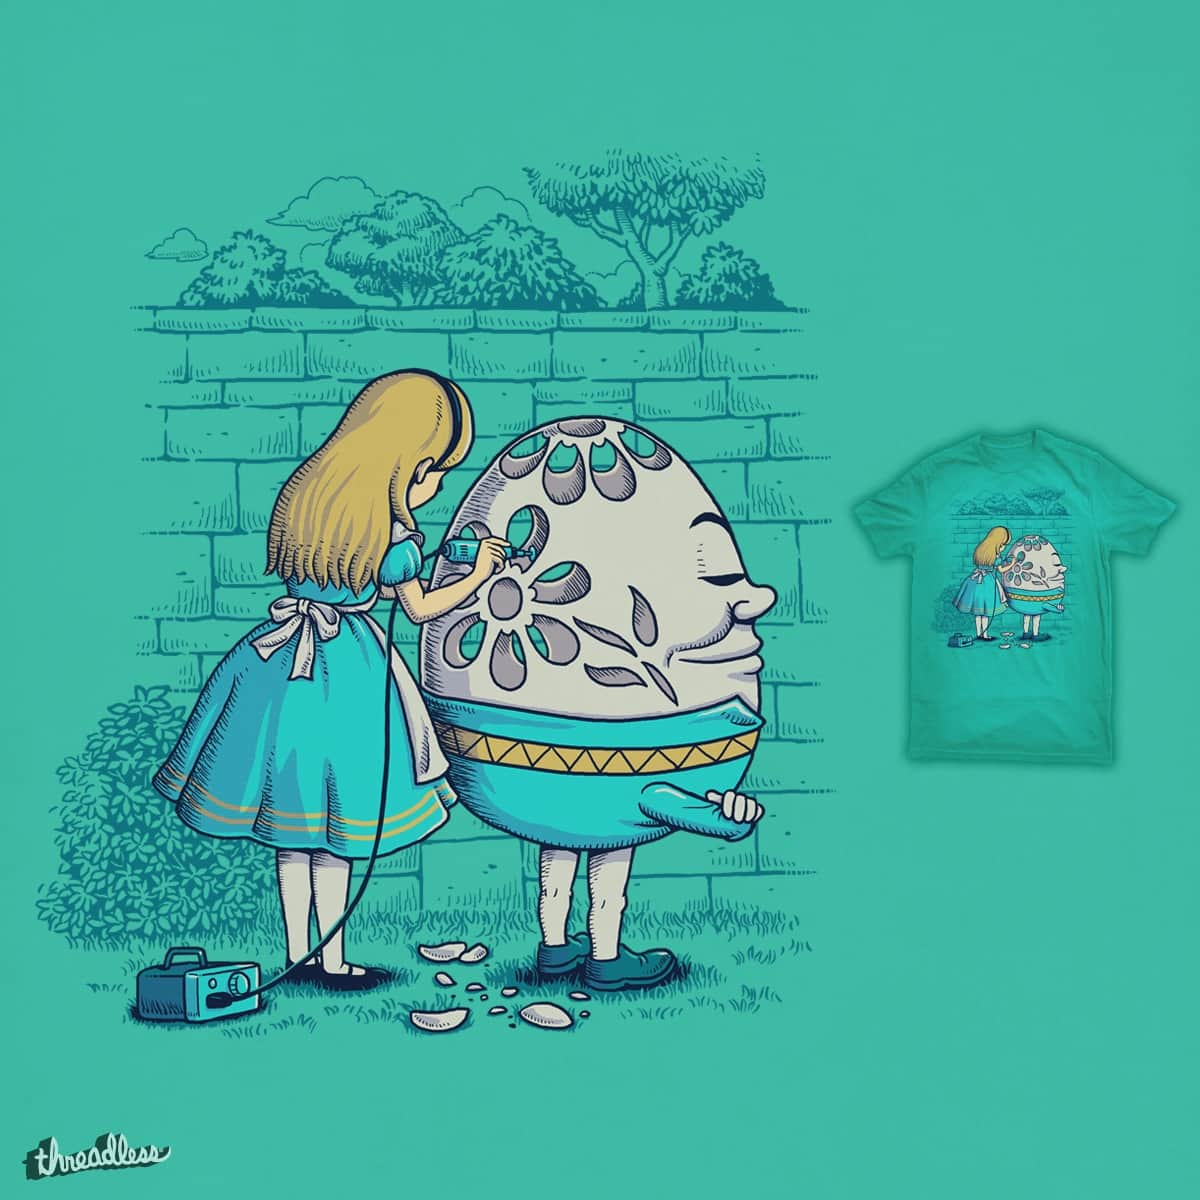 Eggshell Carving by ben chen on Threadless